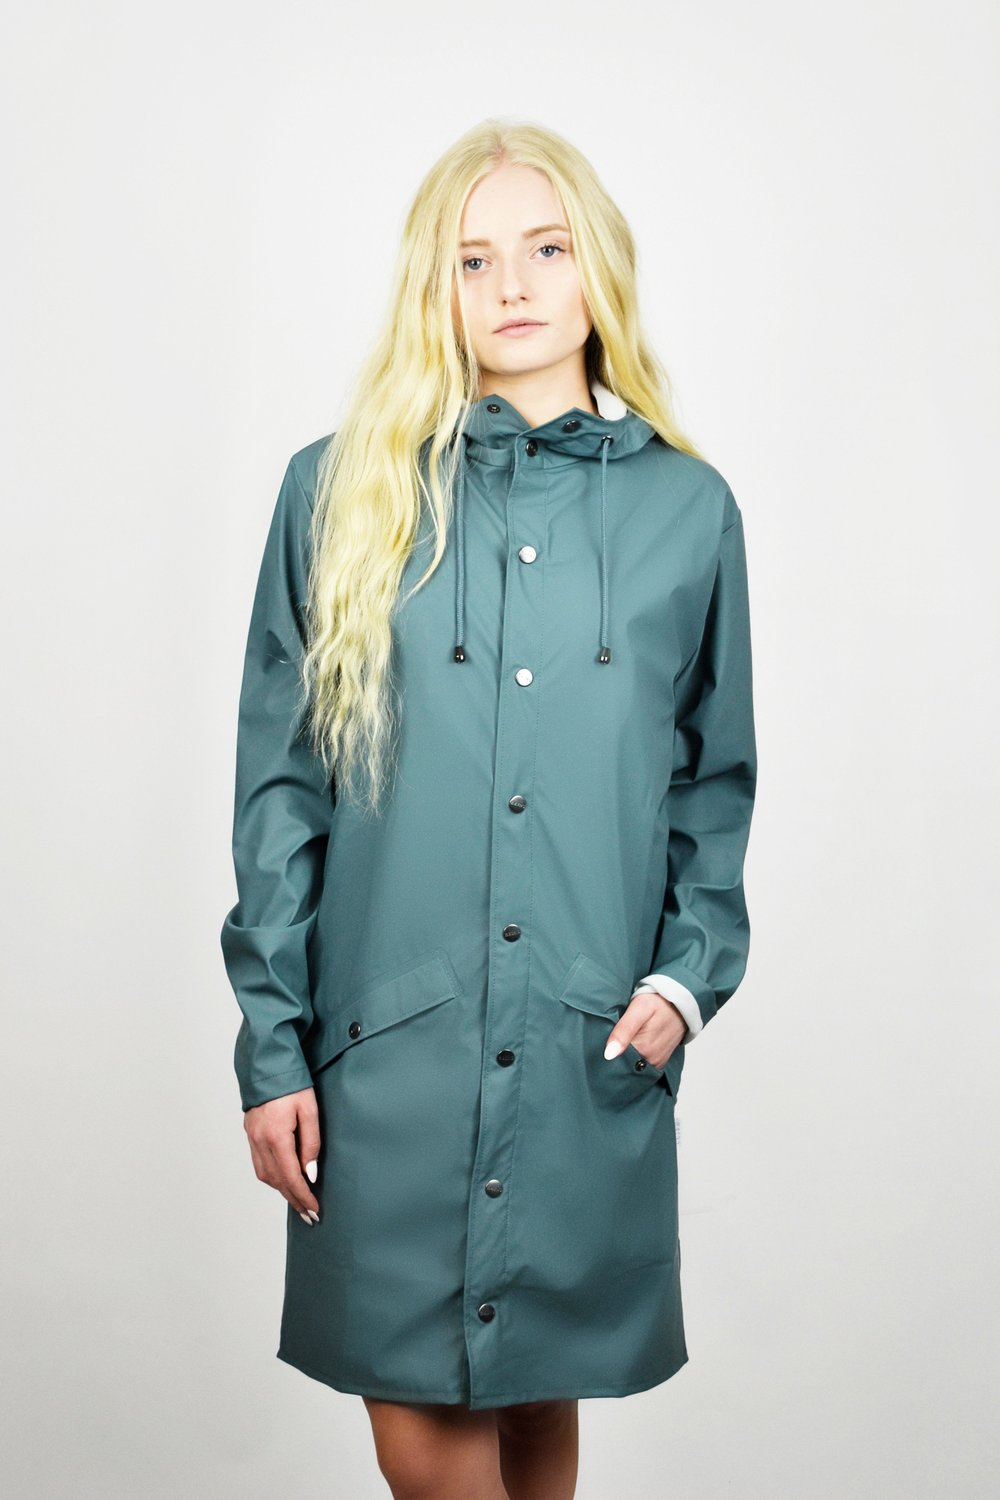 RAINS LONG JACKET. Standard Goods. $125.